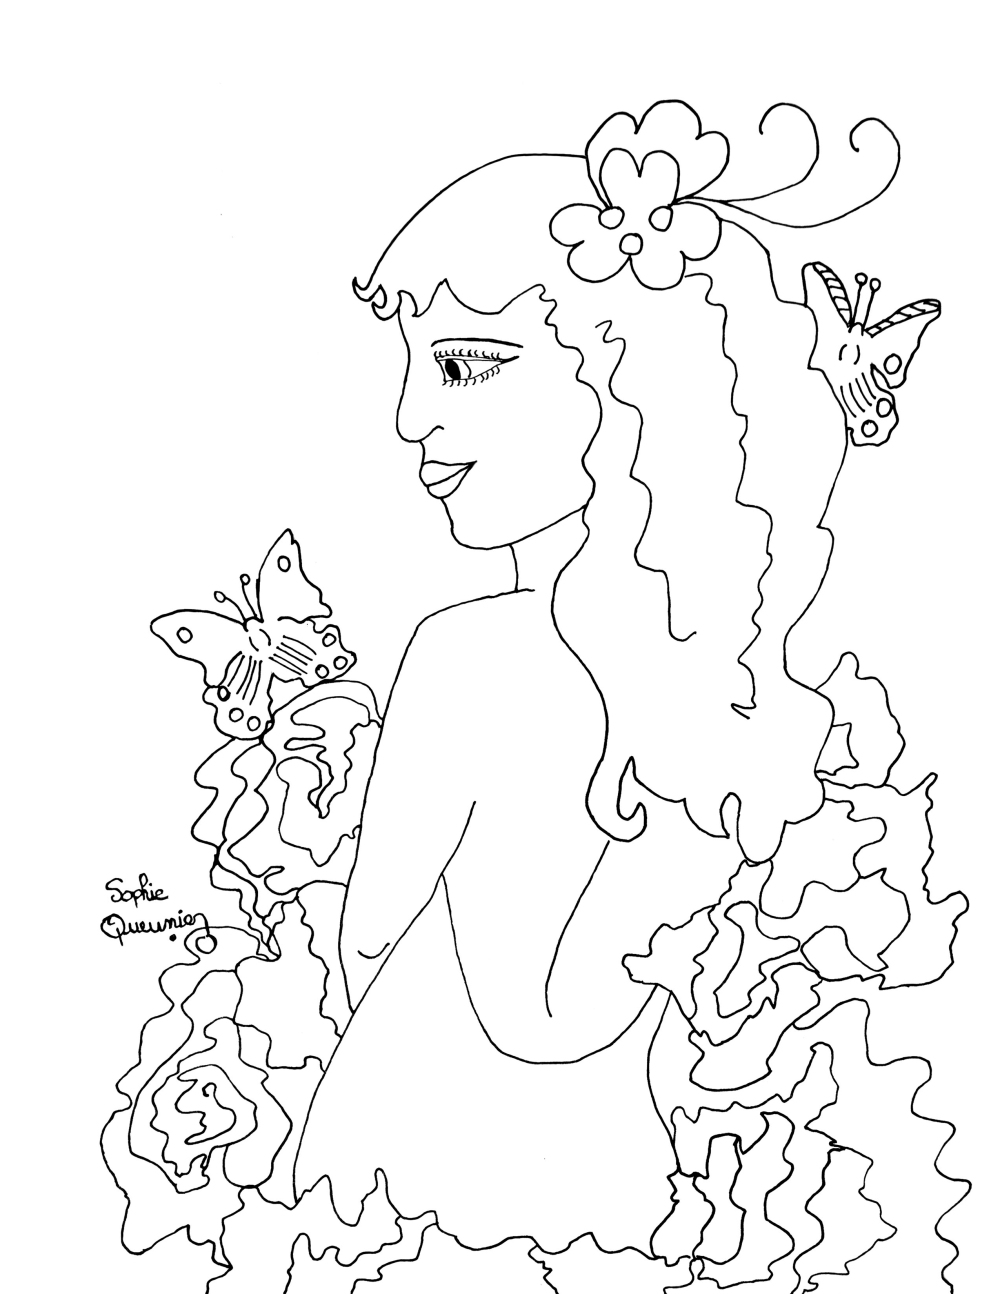 sophies gems coloring book sophie - Free Coloring Pages Adult